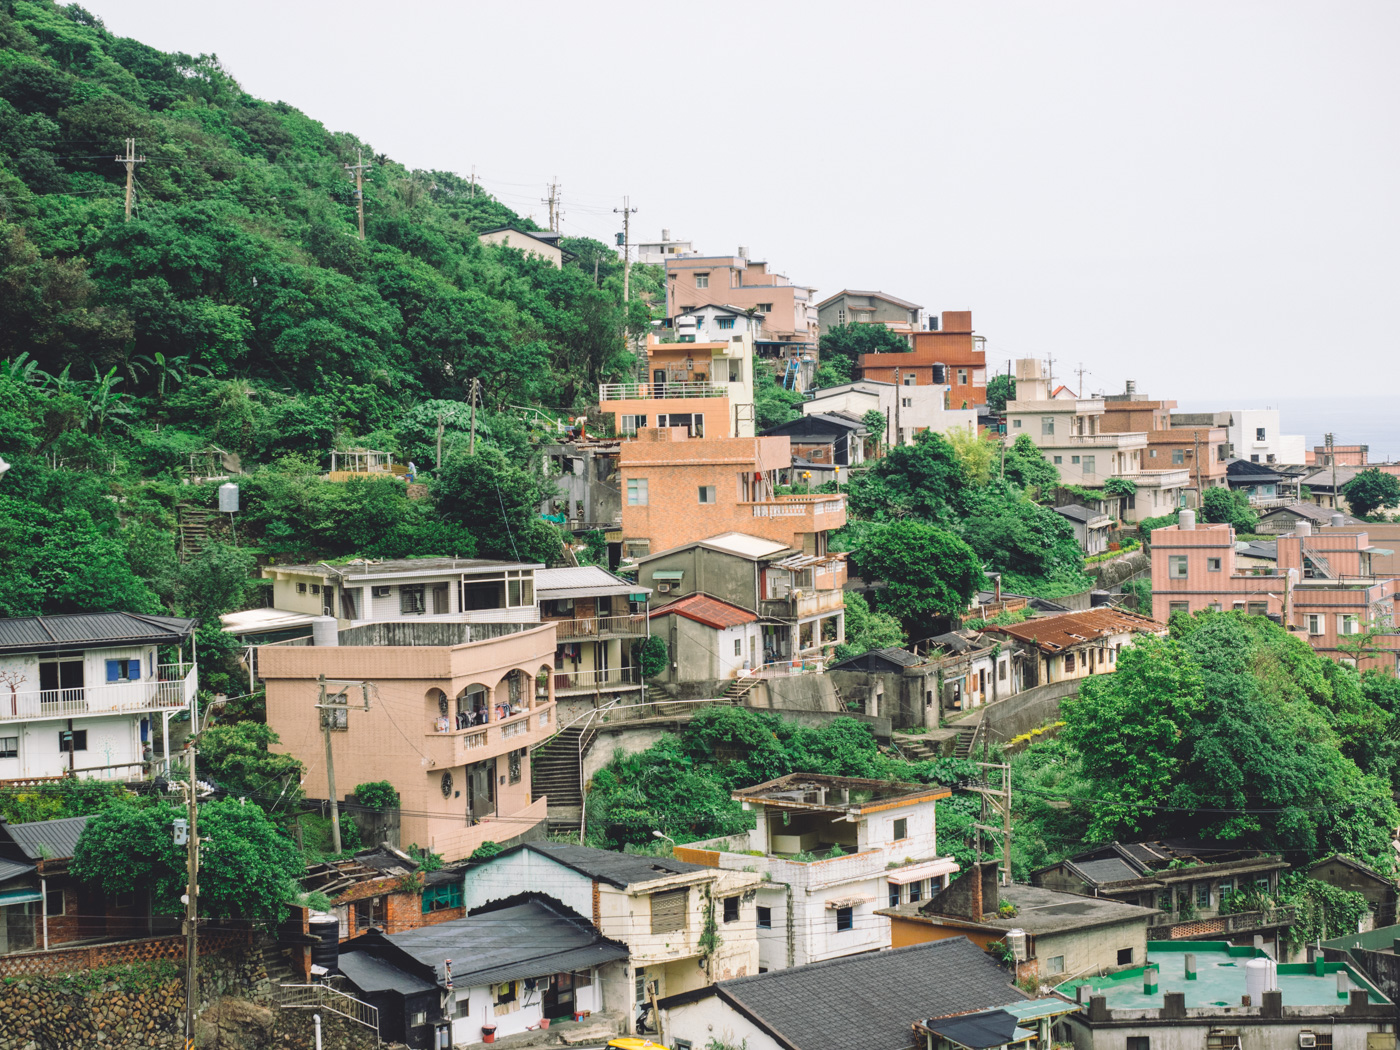 Taiwan - New Taipei City - Stacked houses along the mountains